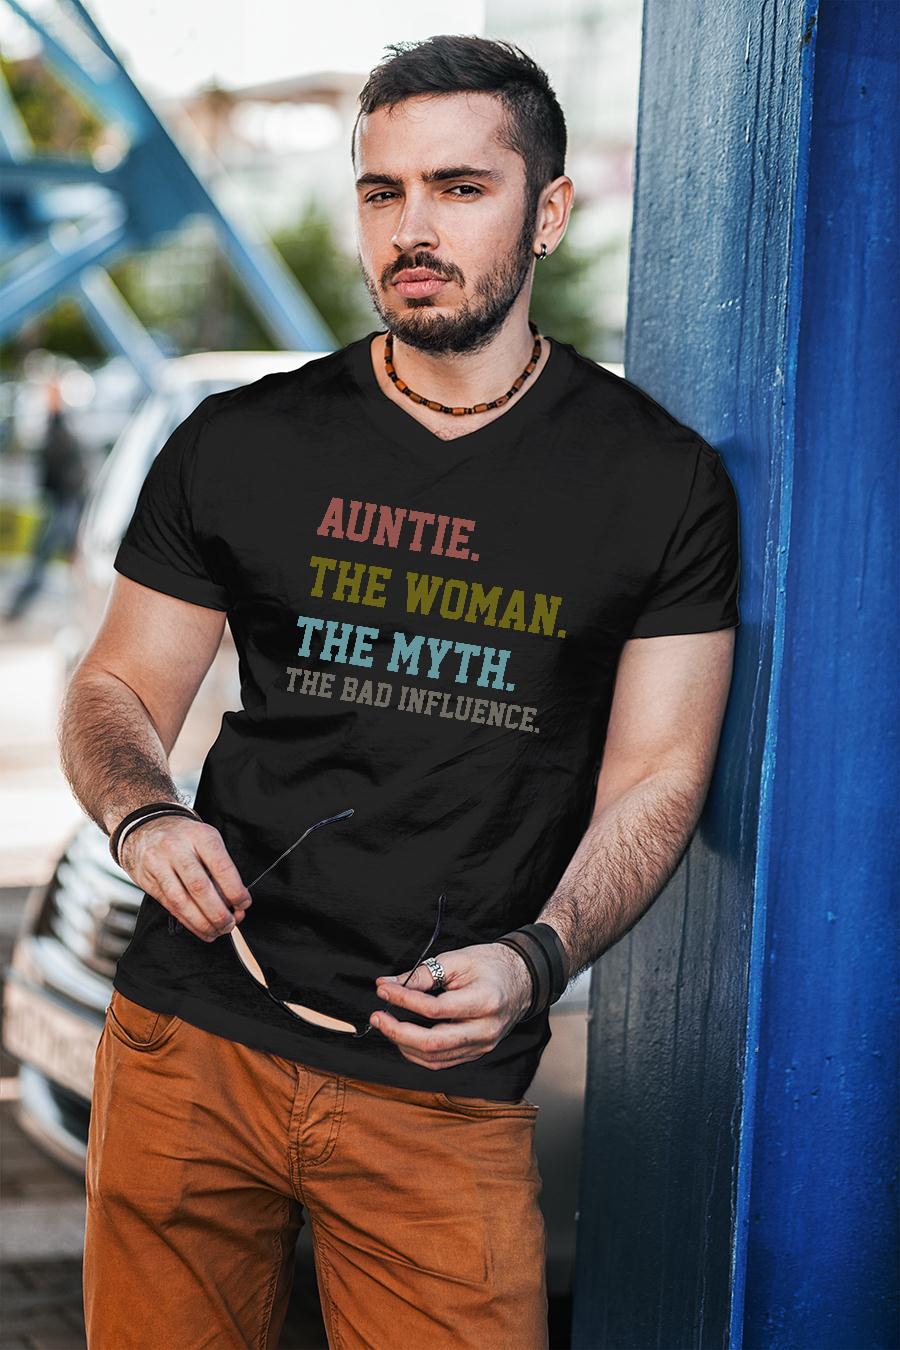 Auntie the woman the myth the bad influence shirt unisex